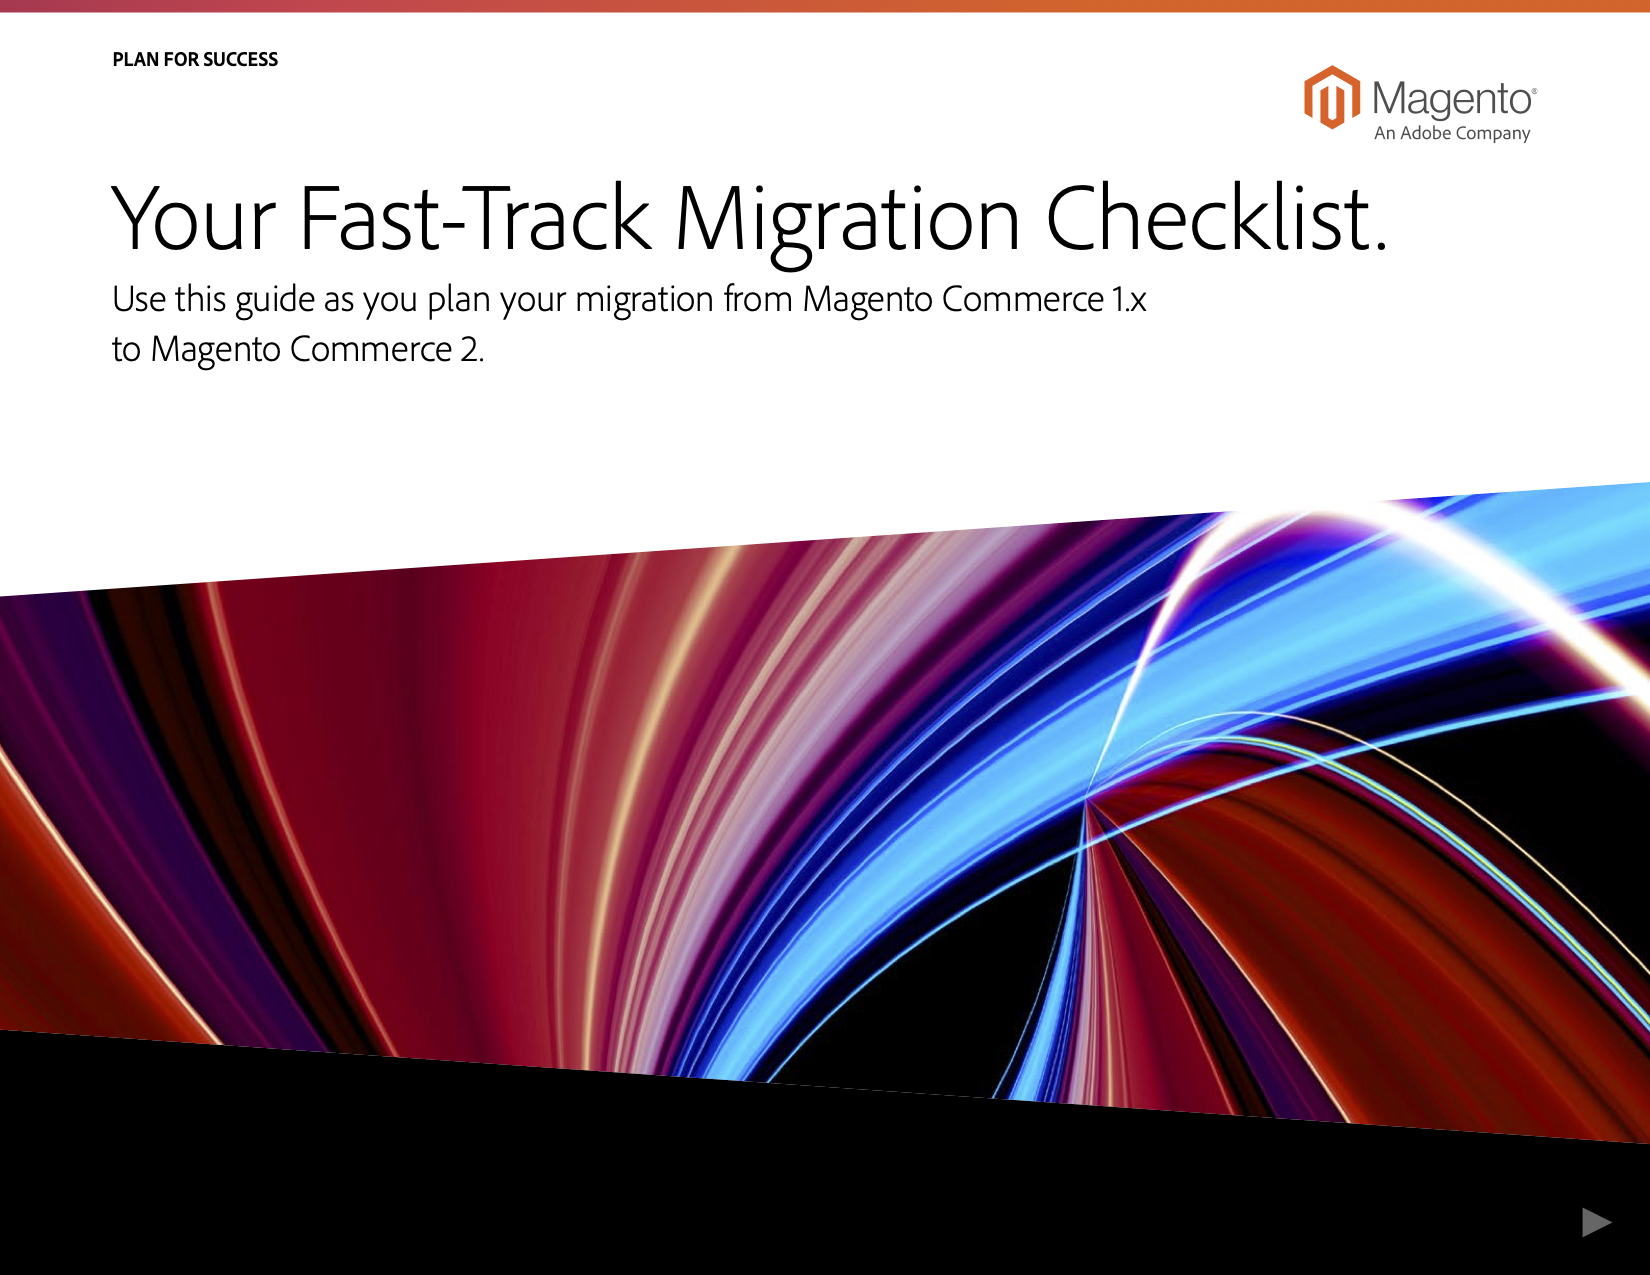 [Checklist] Your Fast Track Migration_031519-1